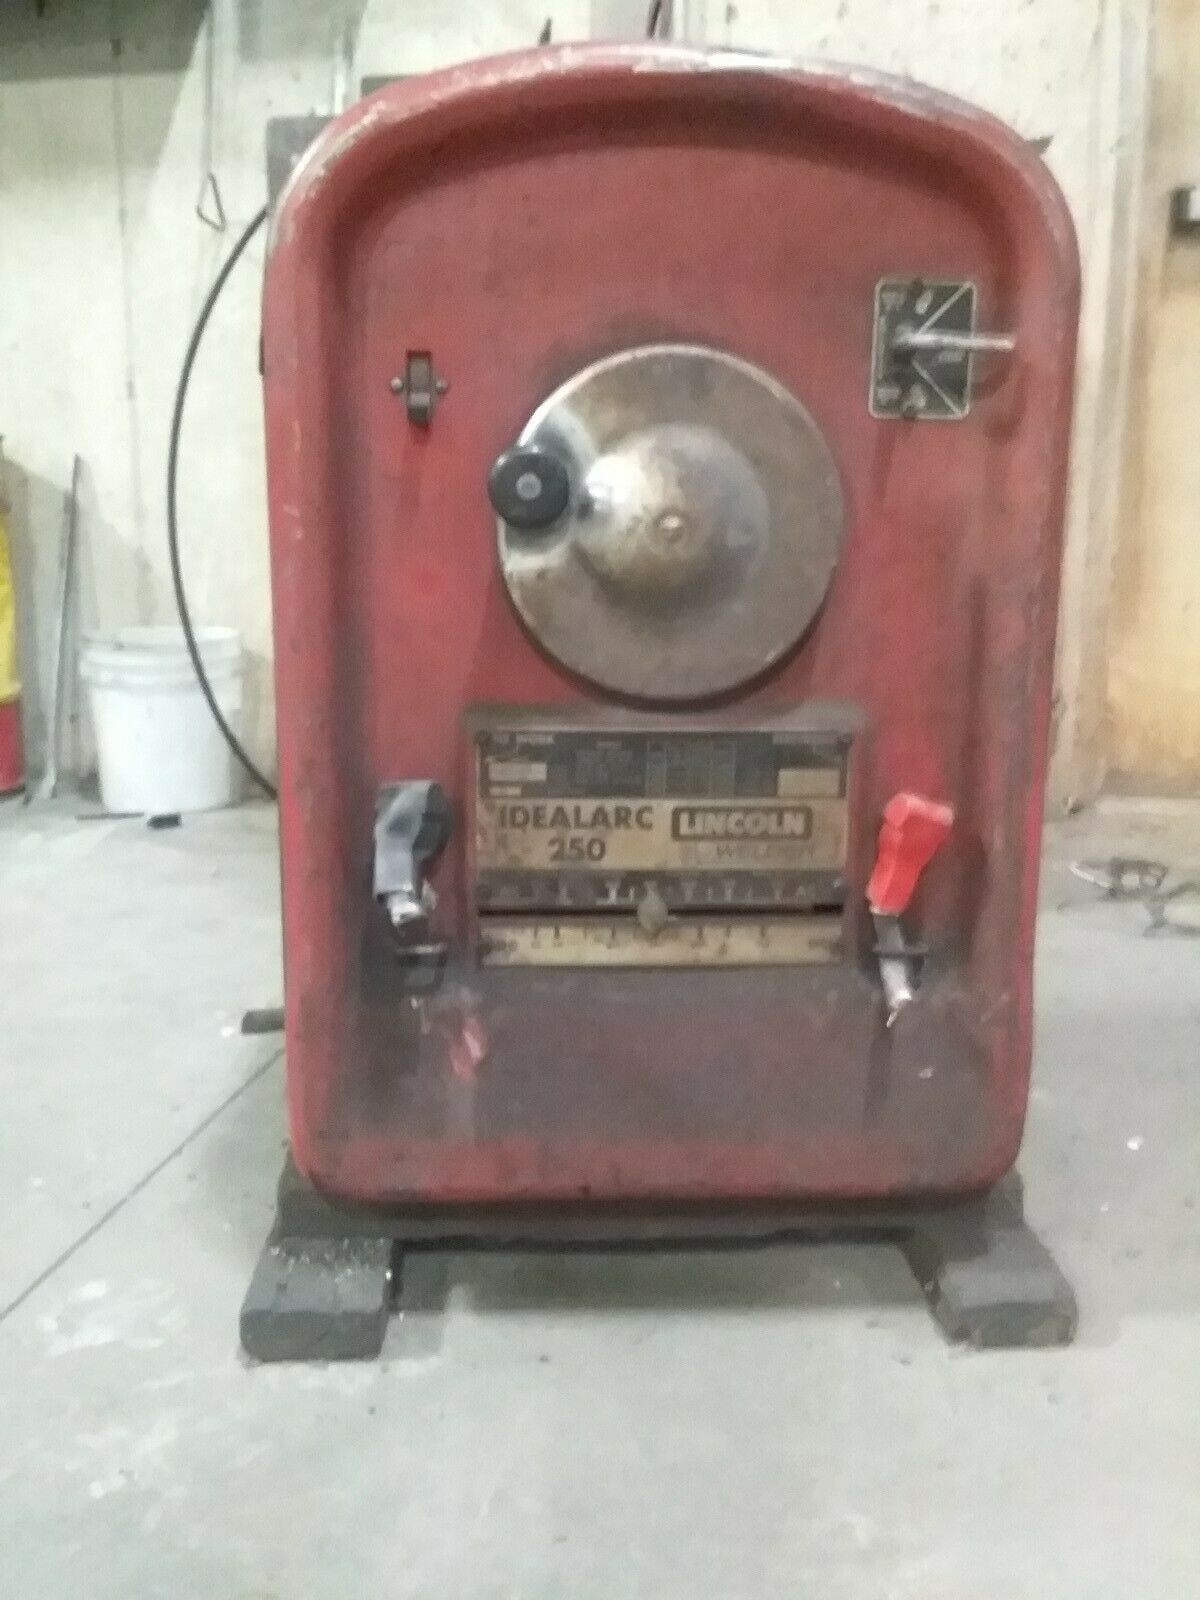 Idealarc 250 Lincoln Arc Welder. Available Now for 380.00